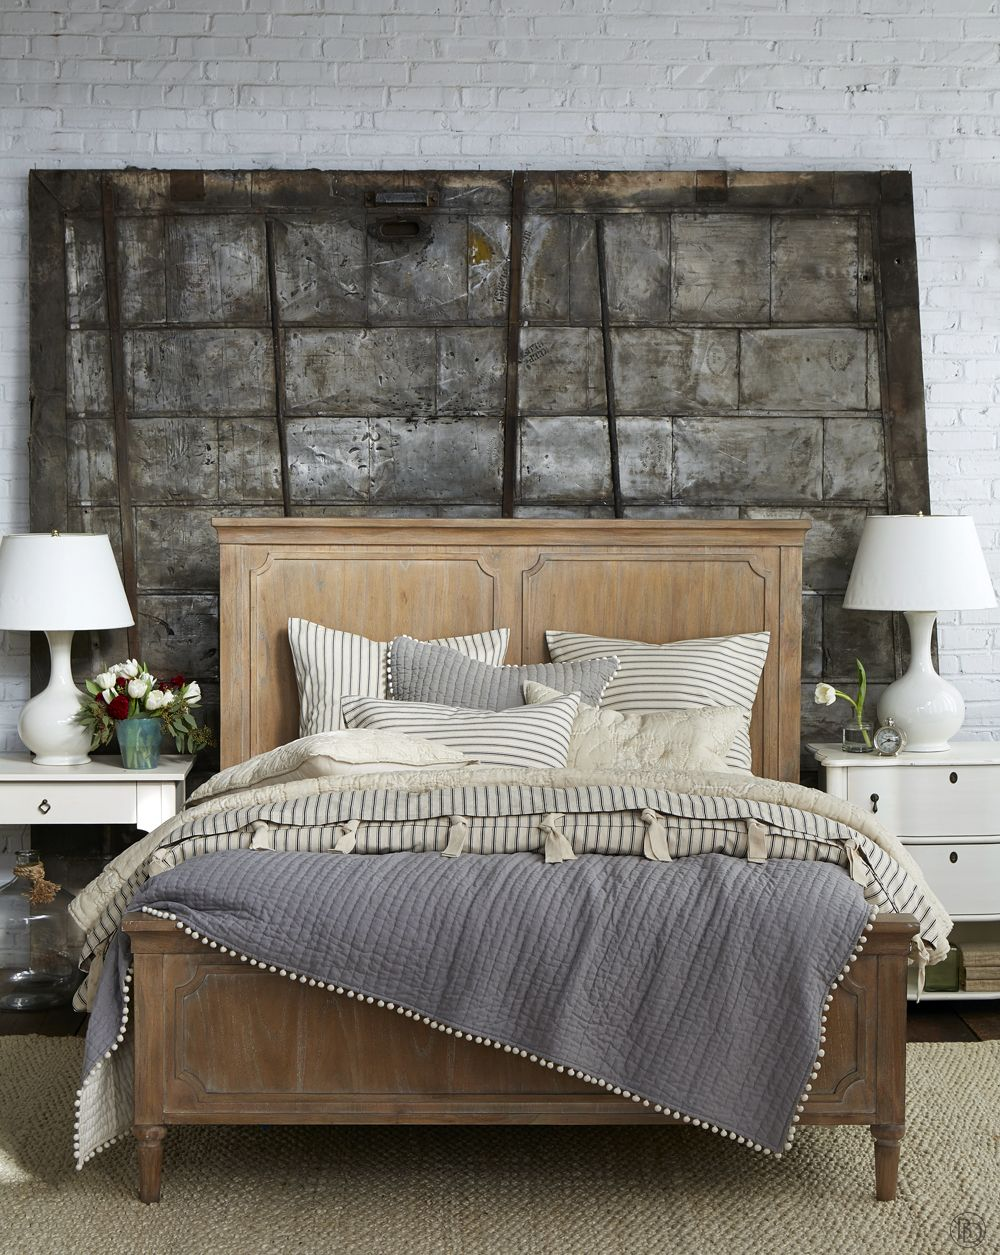 Bedspread designs texture - Ballard Designs Industrial Loft Style Bedroom With Ticking Stripe Bedding And